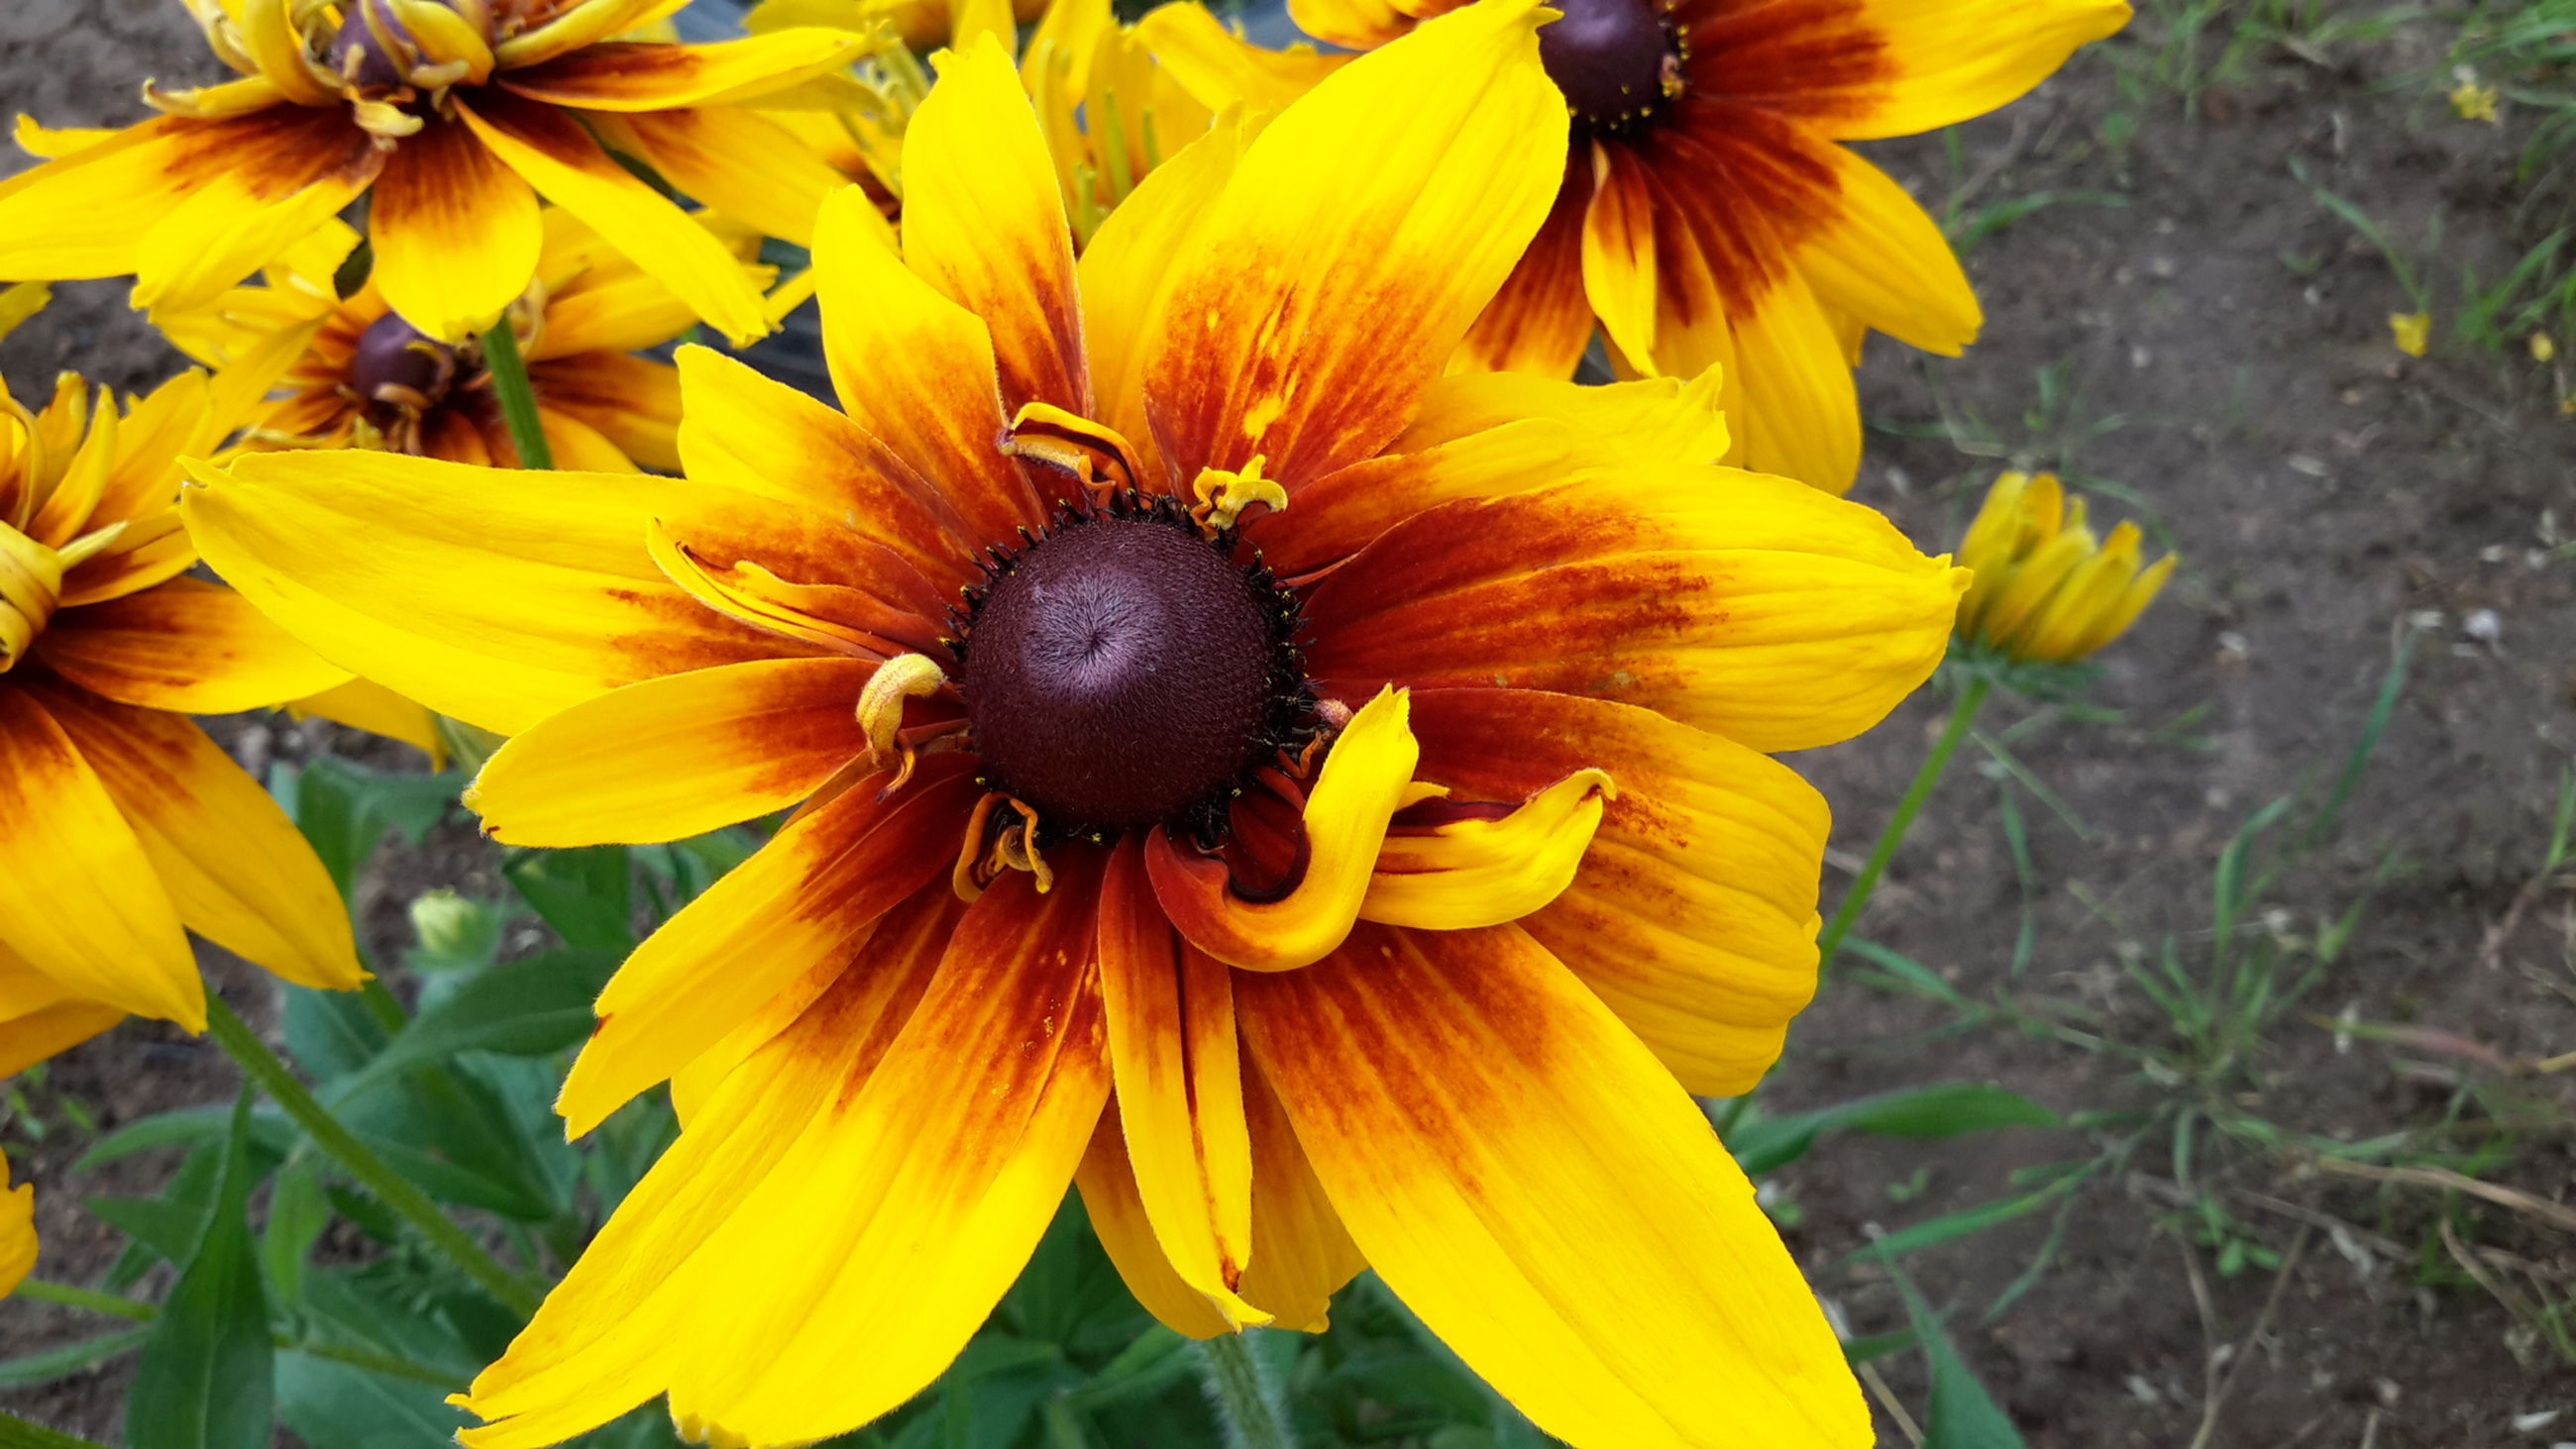 flower, petal, fragility, yellow, flower head, freshness, beauty in nature, nature, growth, pollen, one animal, outdoors, day, animal themes, no people, plant, close-up, blooming, animals in the wild, black-eyed susan